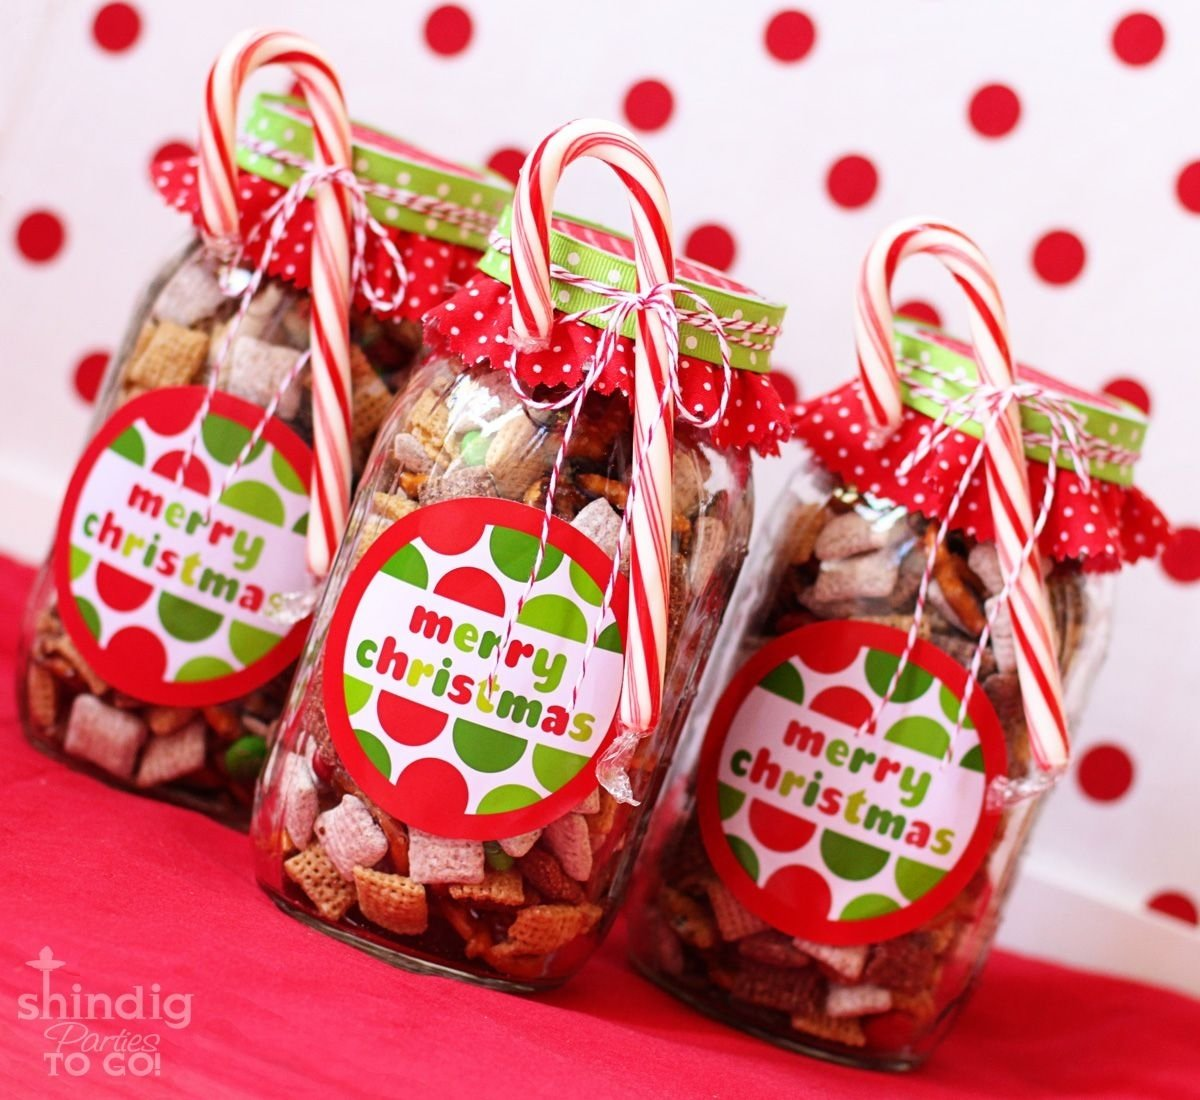 10 Stunning Christmas Gift Ideas For Kids To Make amandas parties to go free merry christmas tags and gift idea 2 2020